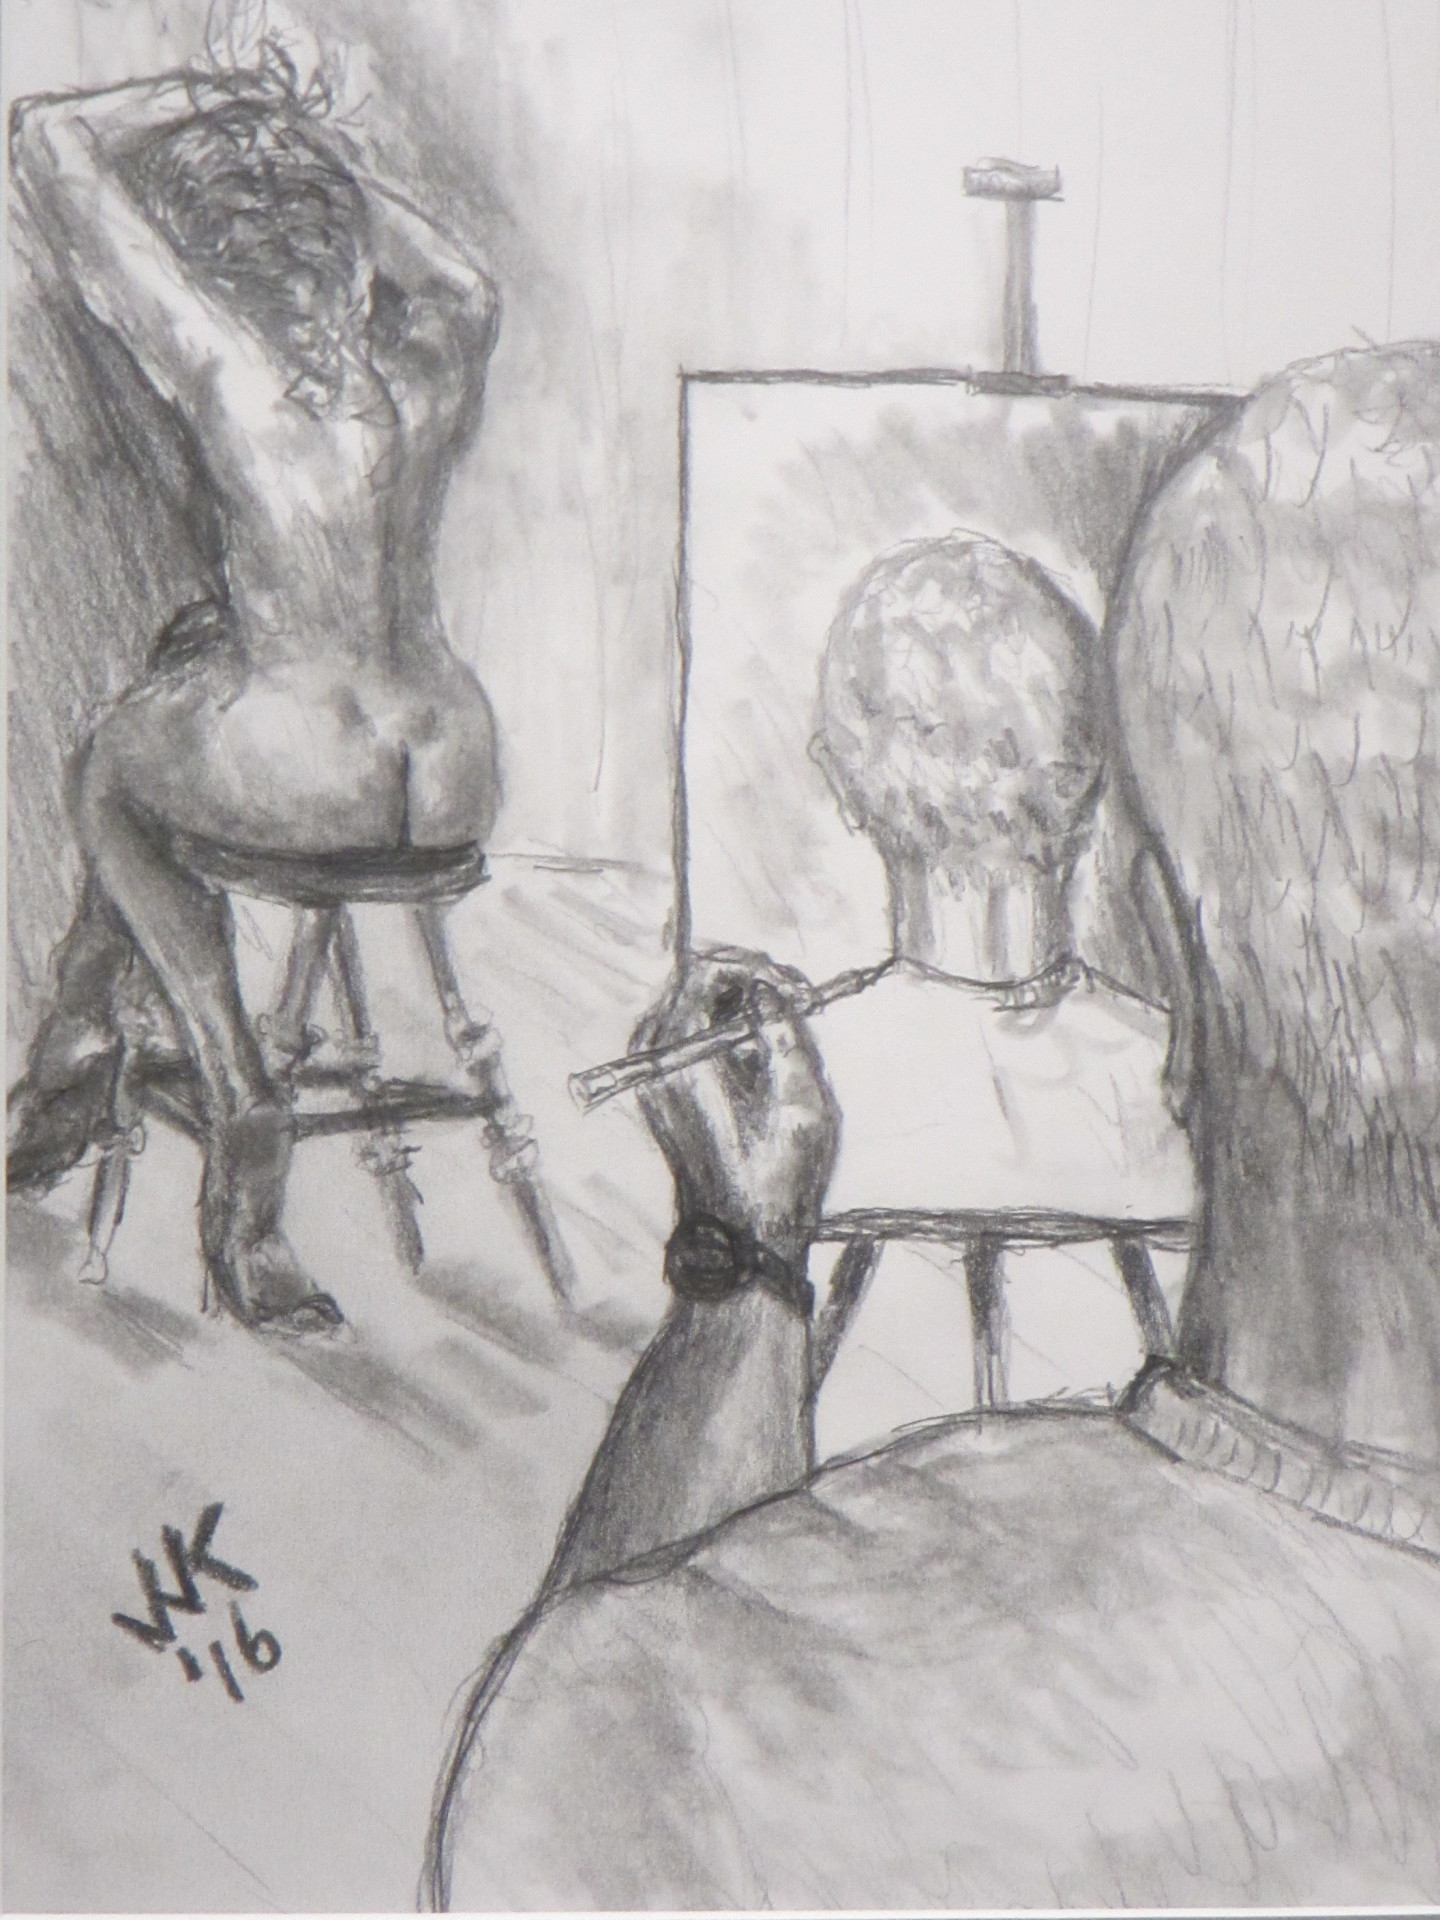 An artist who cannot seem to draw what he sees.